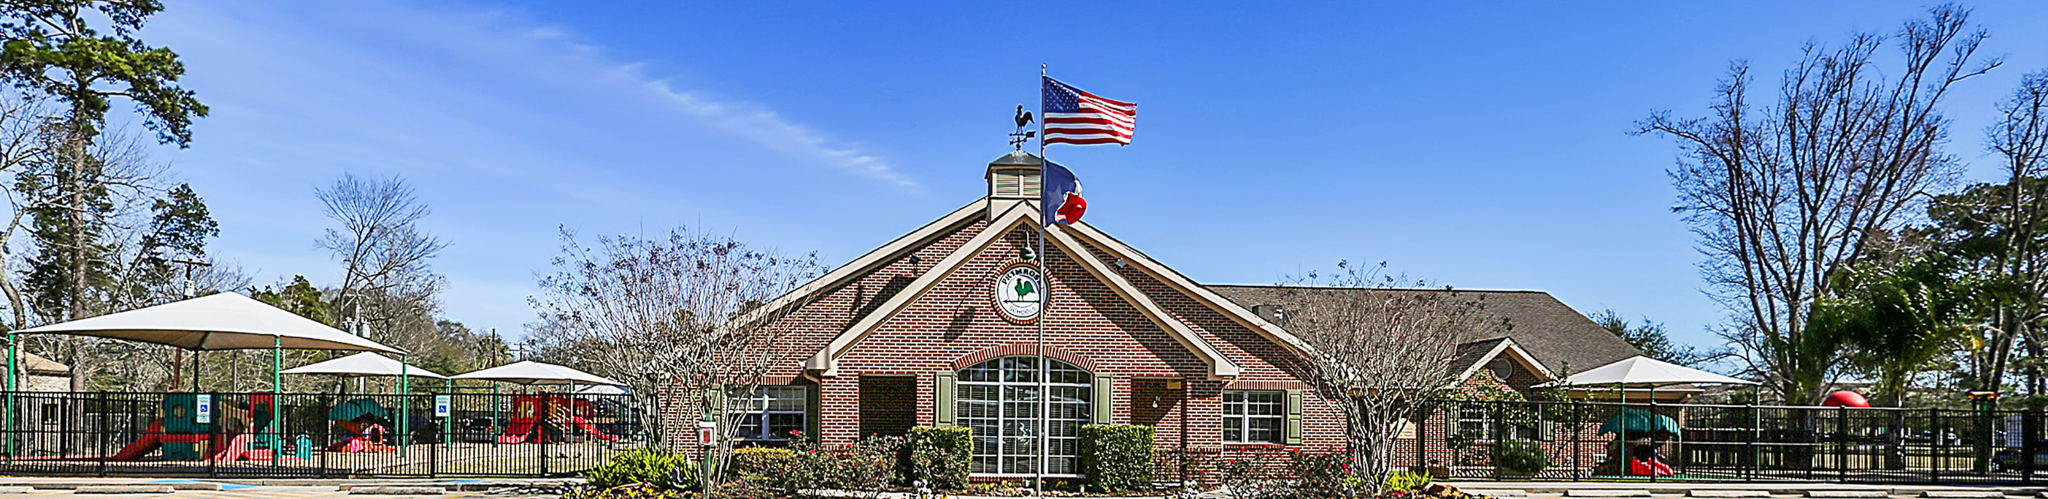 Exterior of a Primrose School of Friendswood